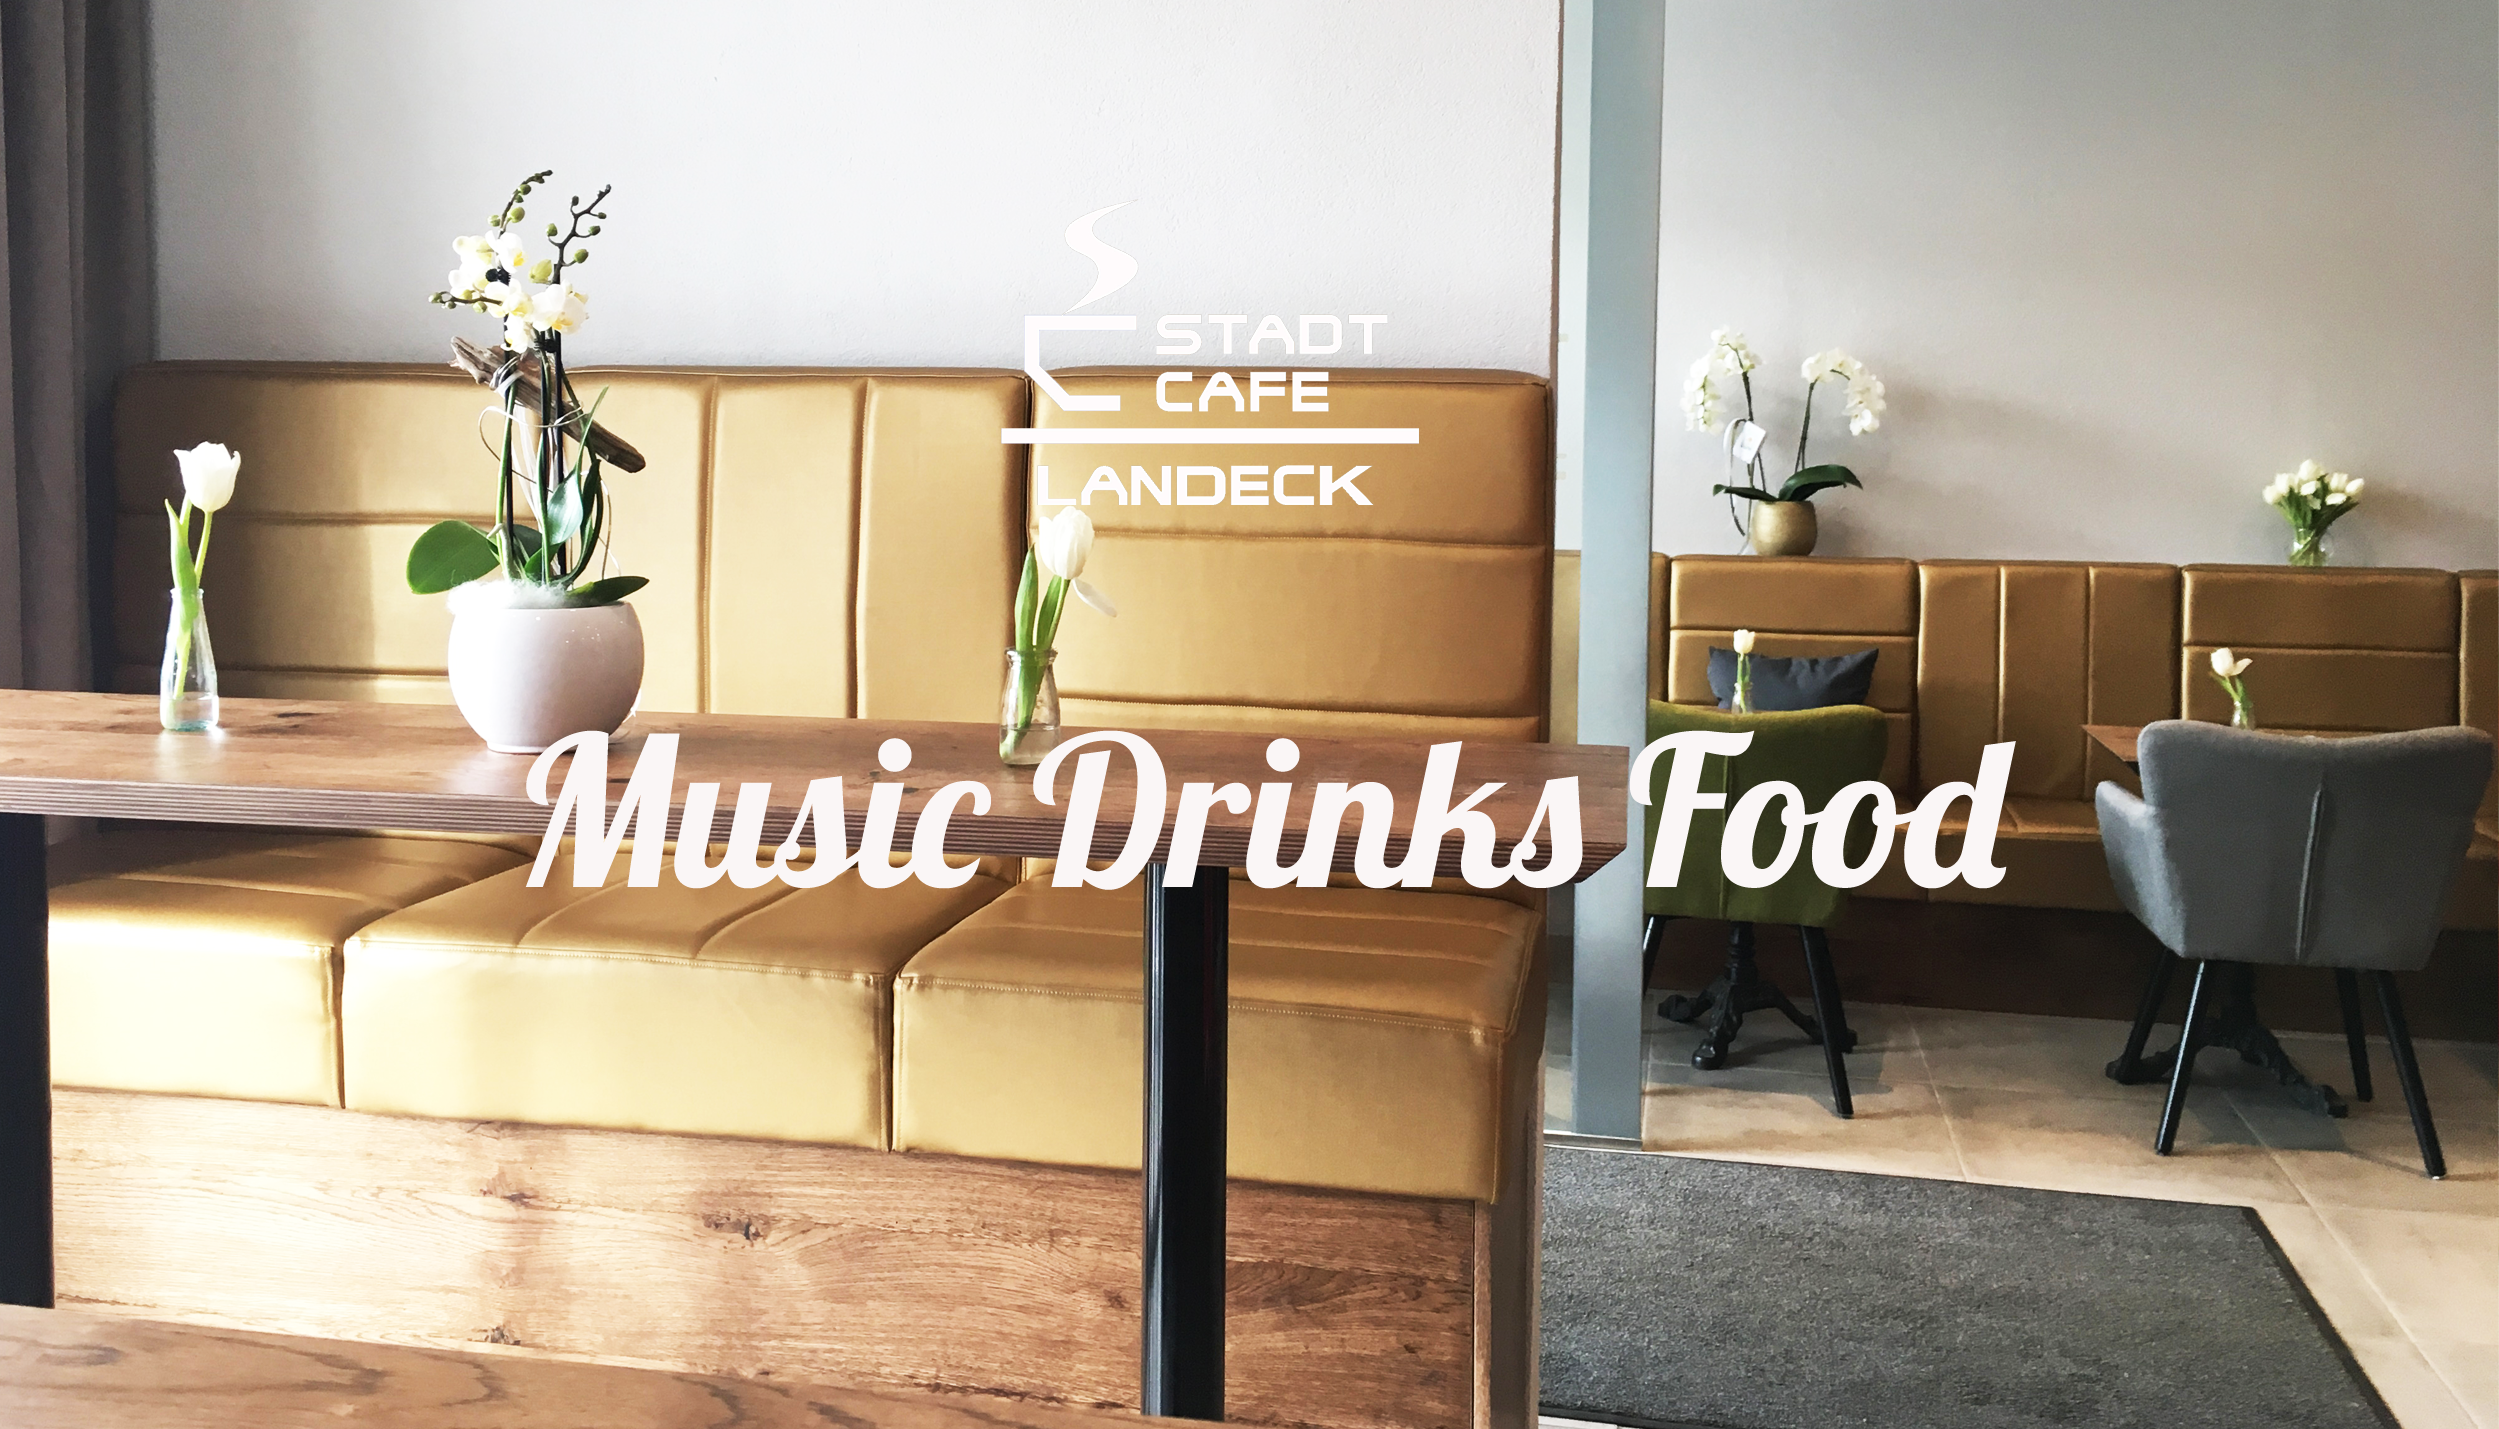 stadtcafemusic drink food facebook titelbild